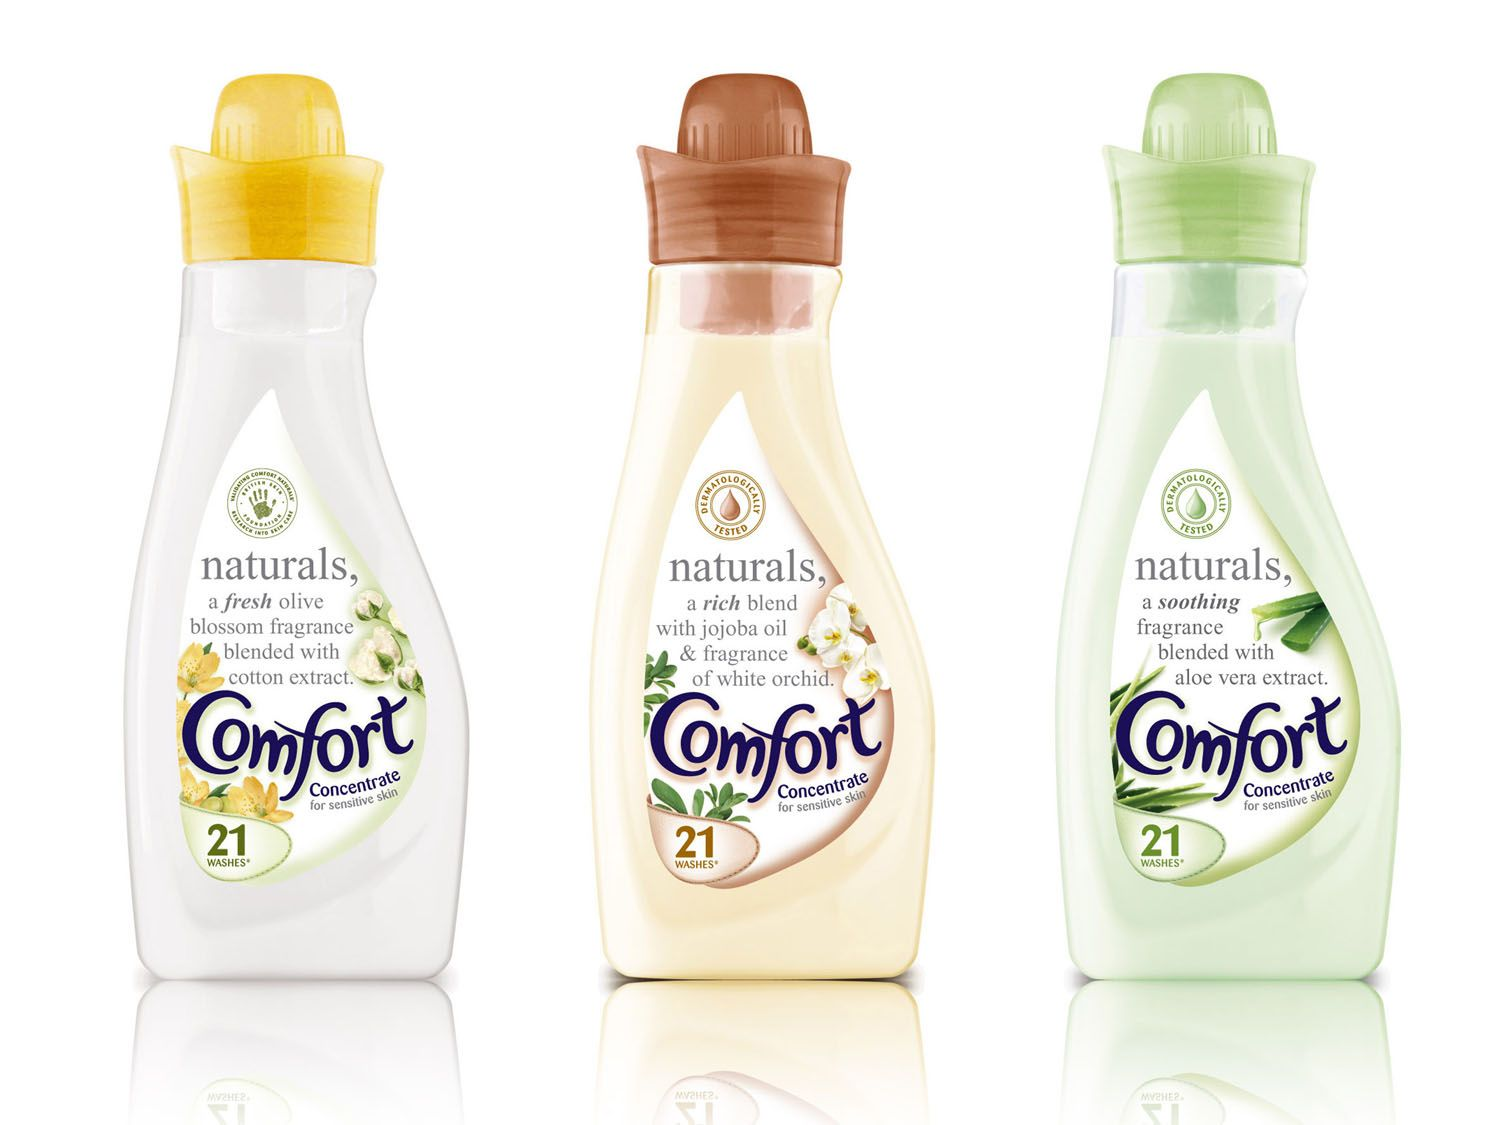 Comfort Unilever Cosmetic Packaging Design Laundry Detergent